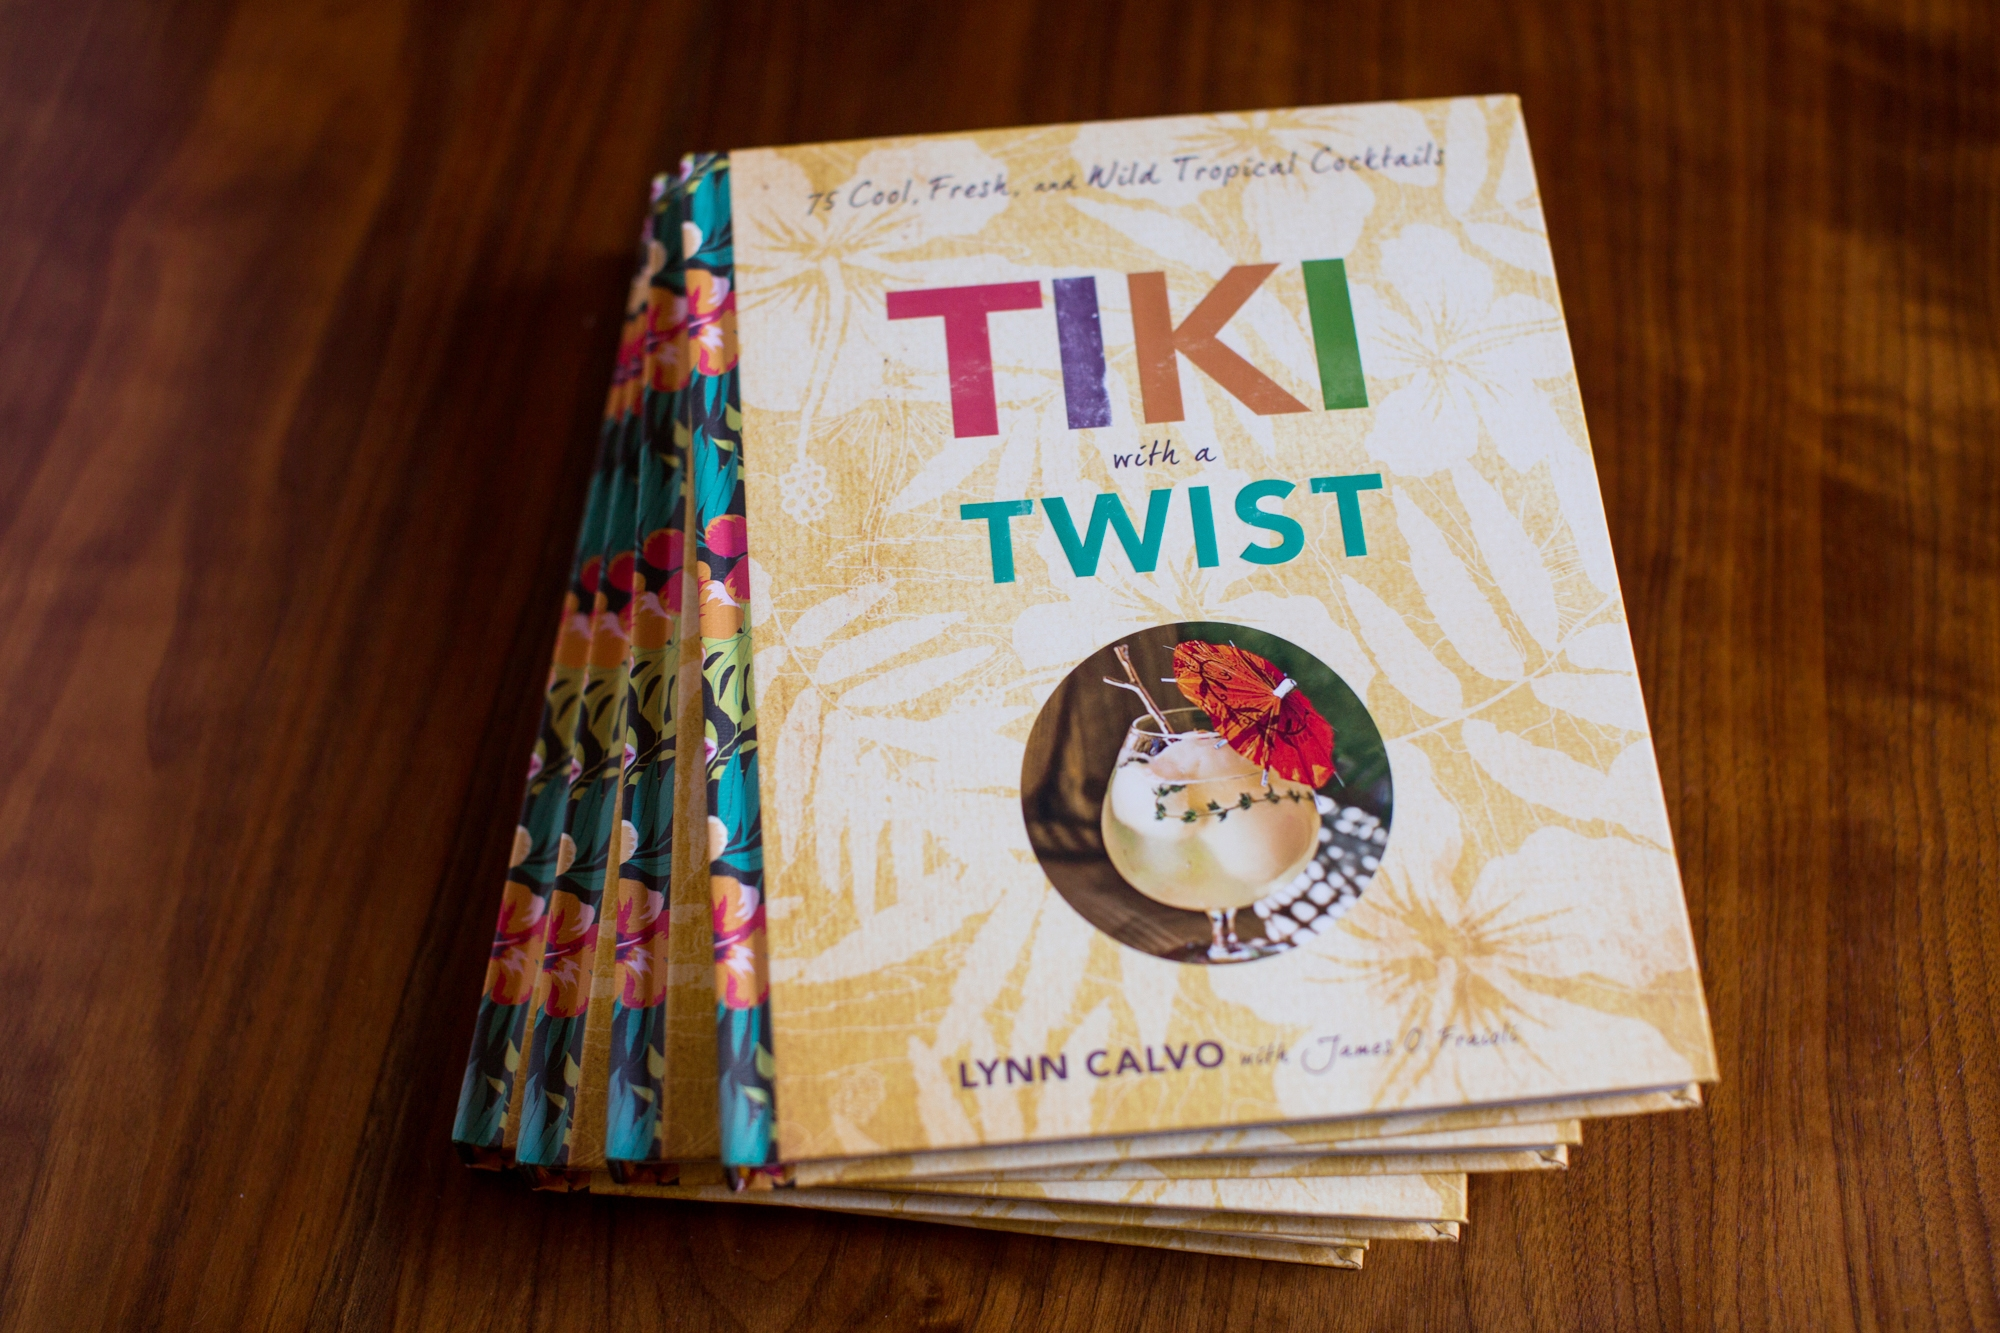 Tiki with a Twist Cocktail Book